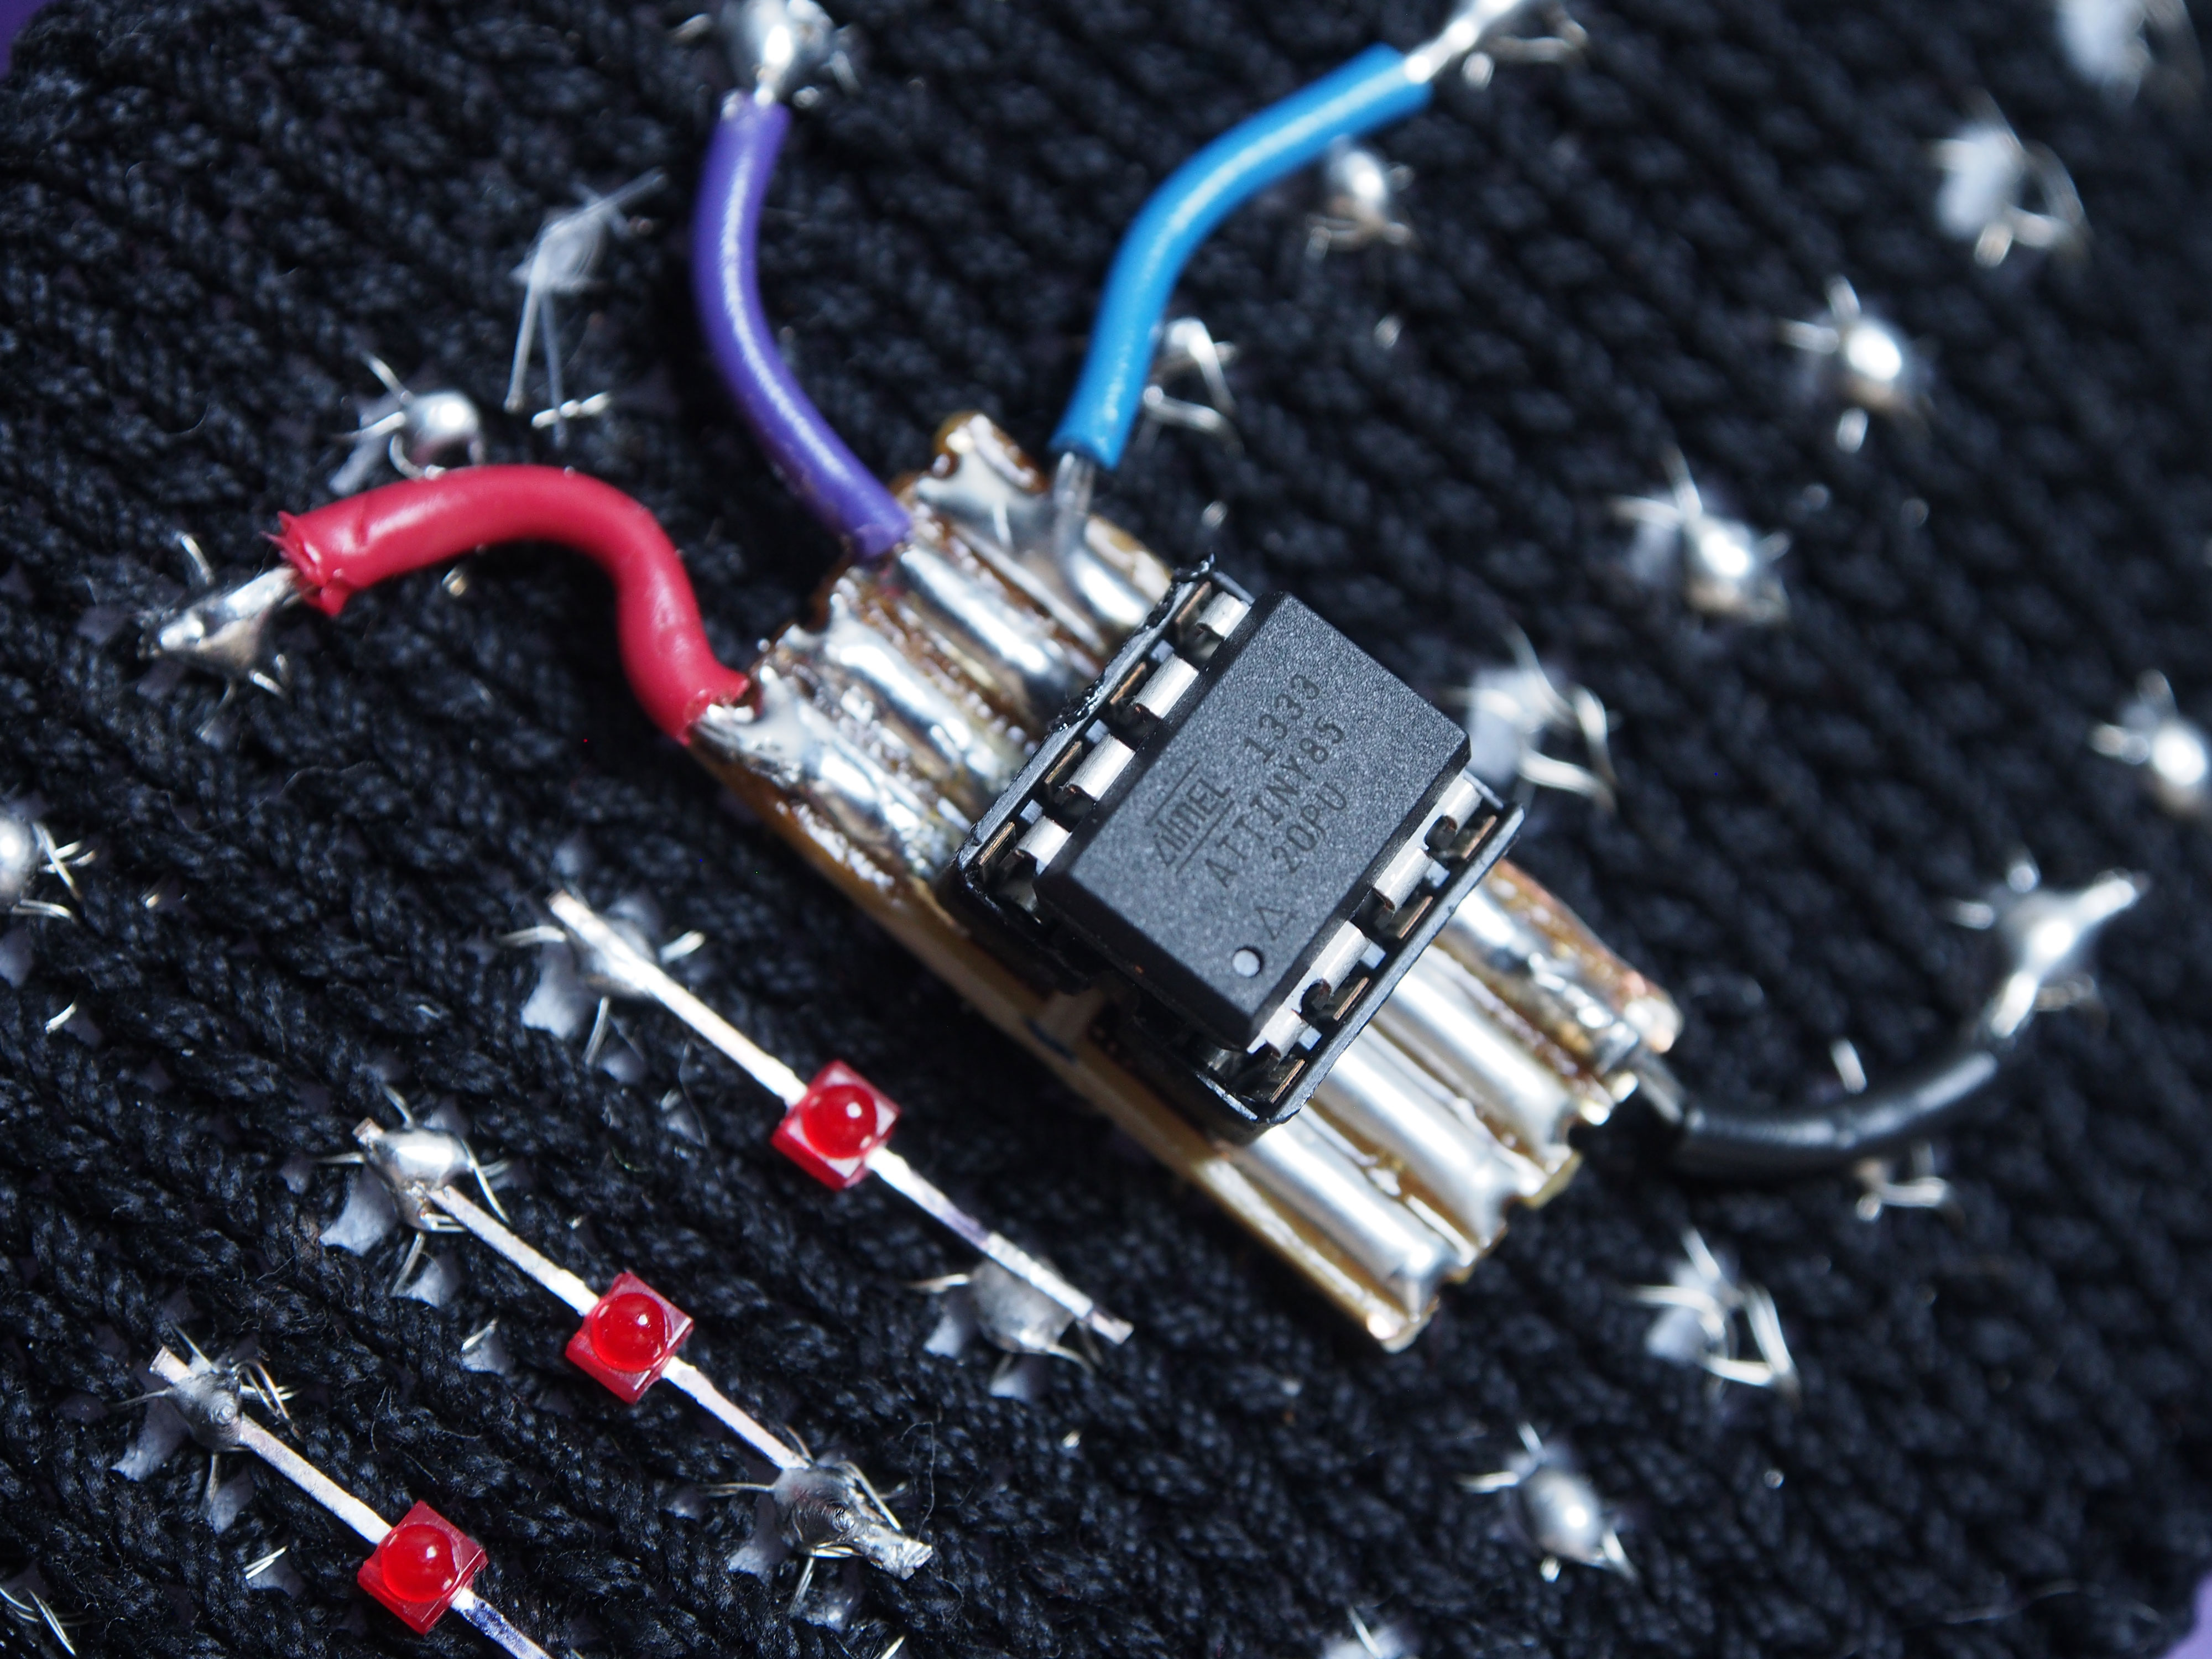 womens electronics workshops june 21 and 28 pumping station one